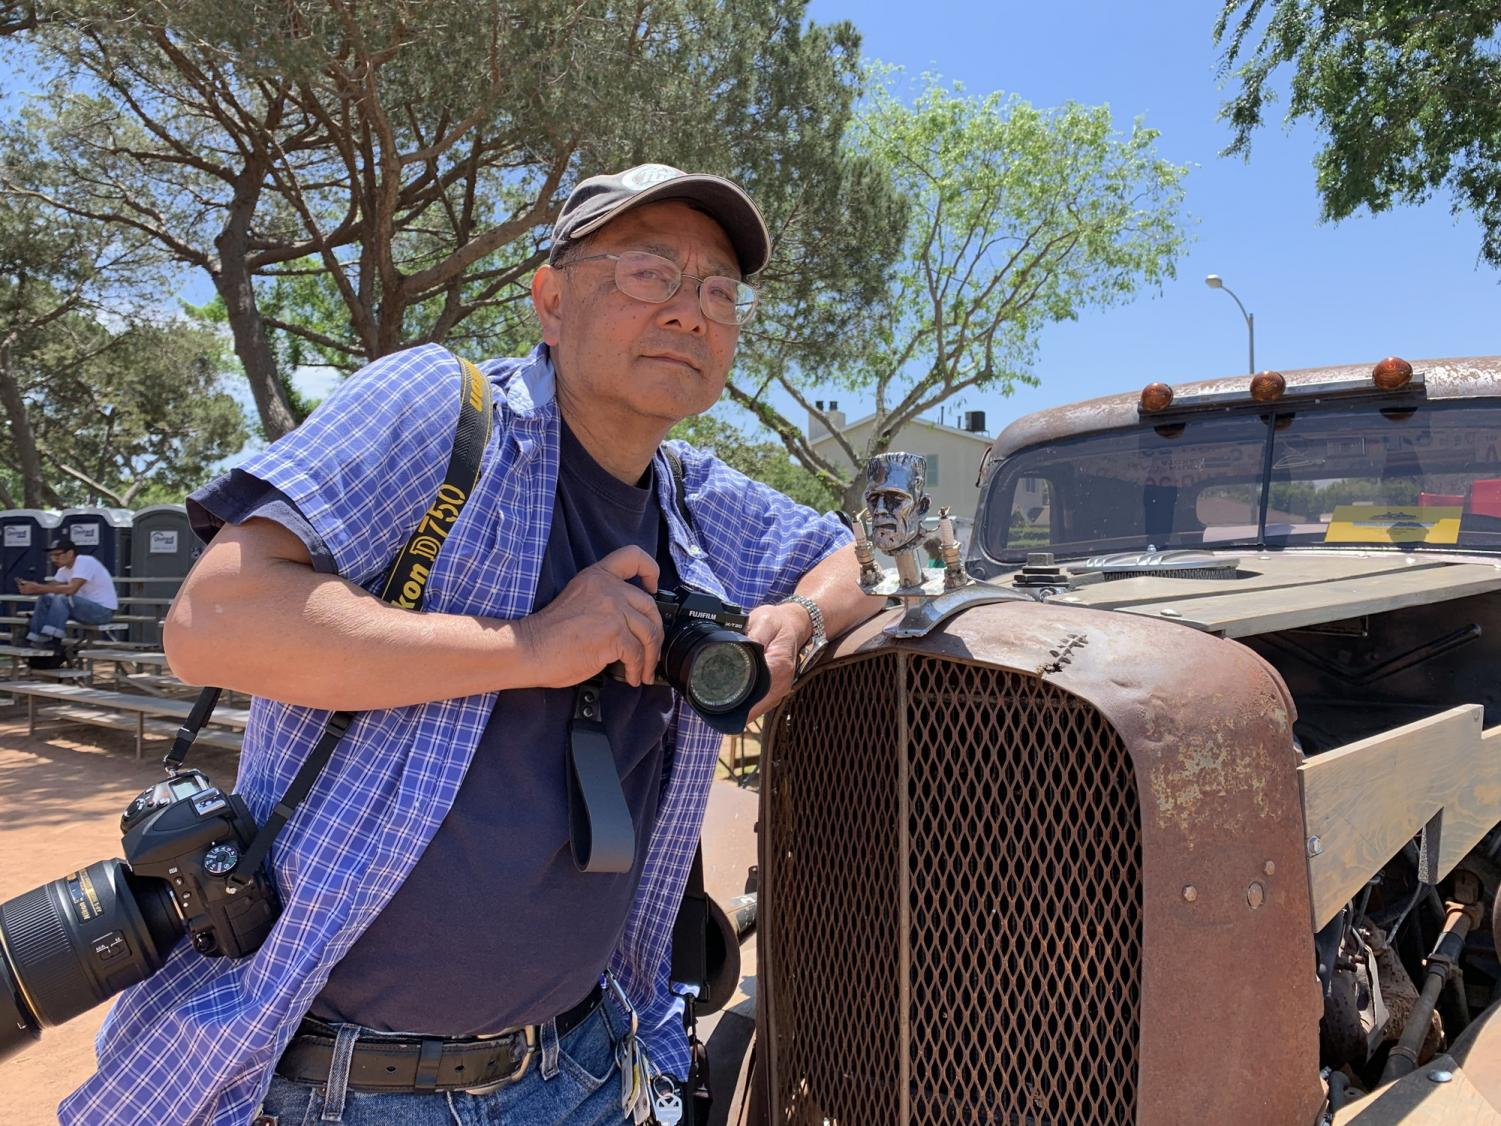 Photojournalism instructor Gary Kohatsu has been a part of the journalism department at El Camino College as both a student and instructor for a period spanding over 30 years, and has been quietly preparing to transition out as he officially will be retiring in June. Photo credit: Jose Tobar